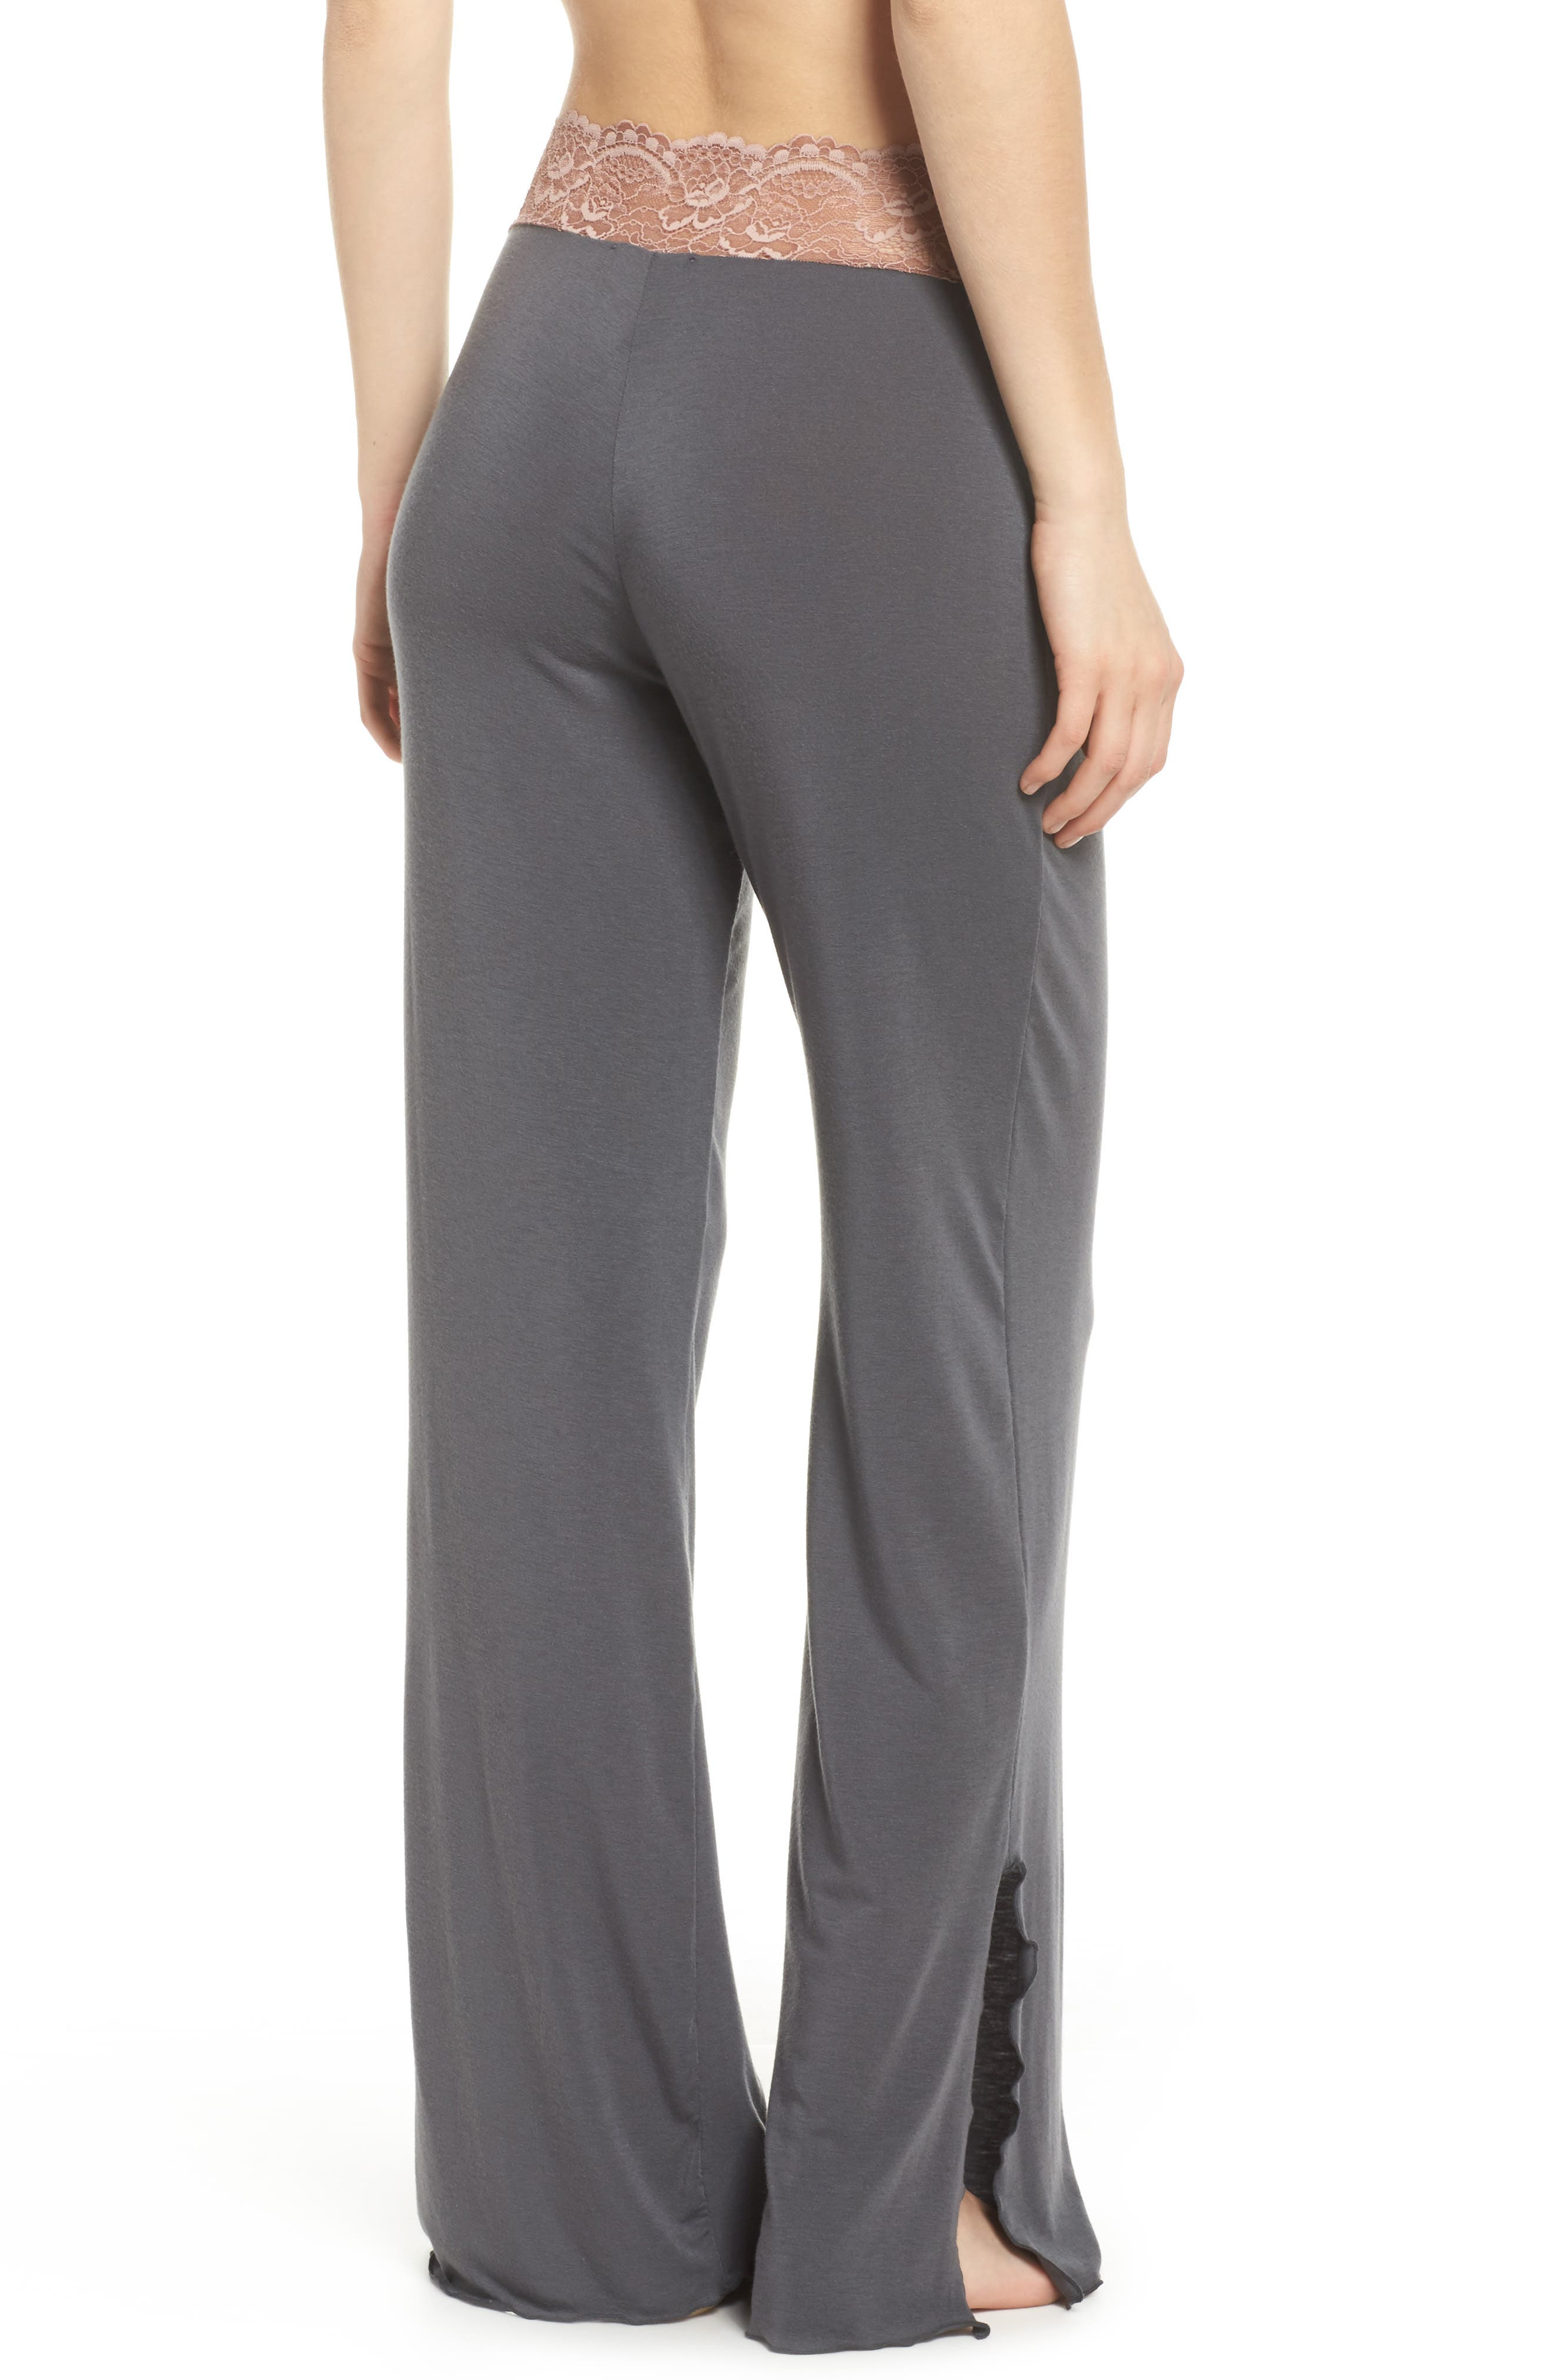 Lace Trim Pants,                             Alternate thumbnail 2, color,                             Slate With Java Lace